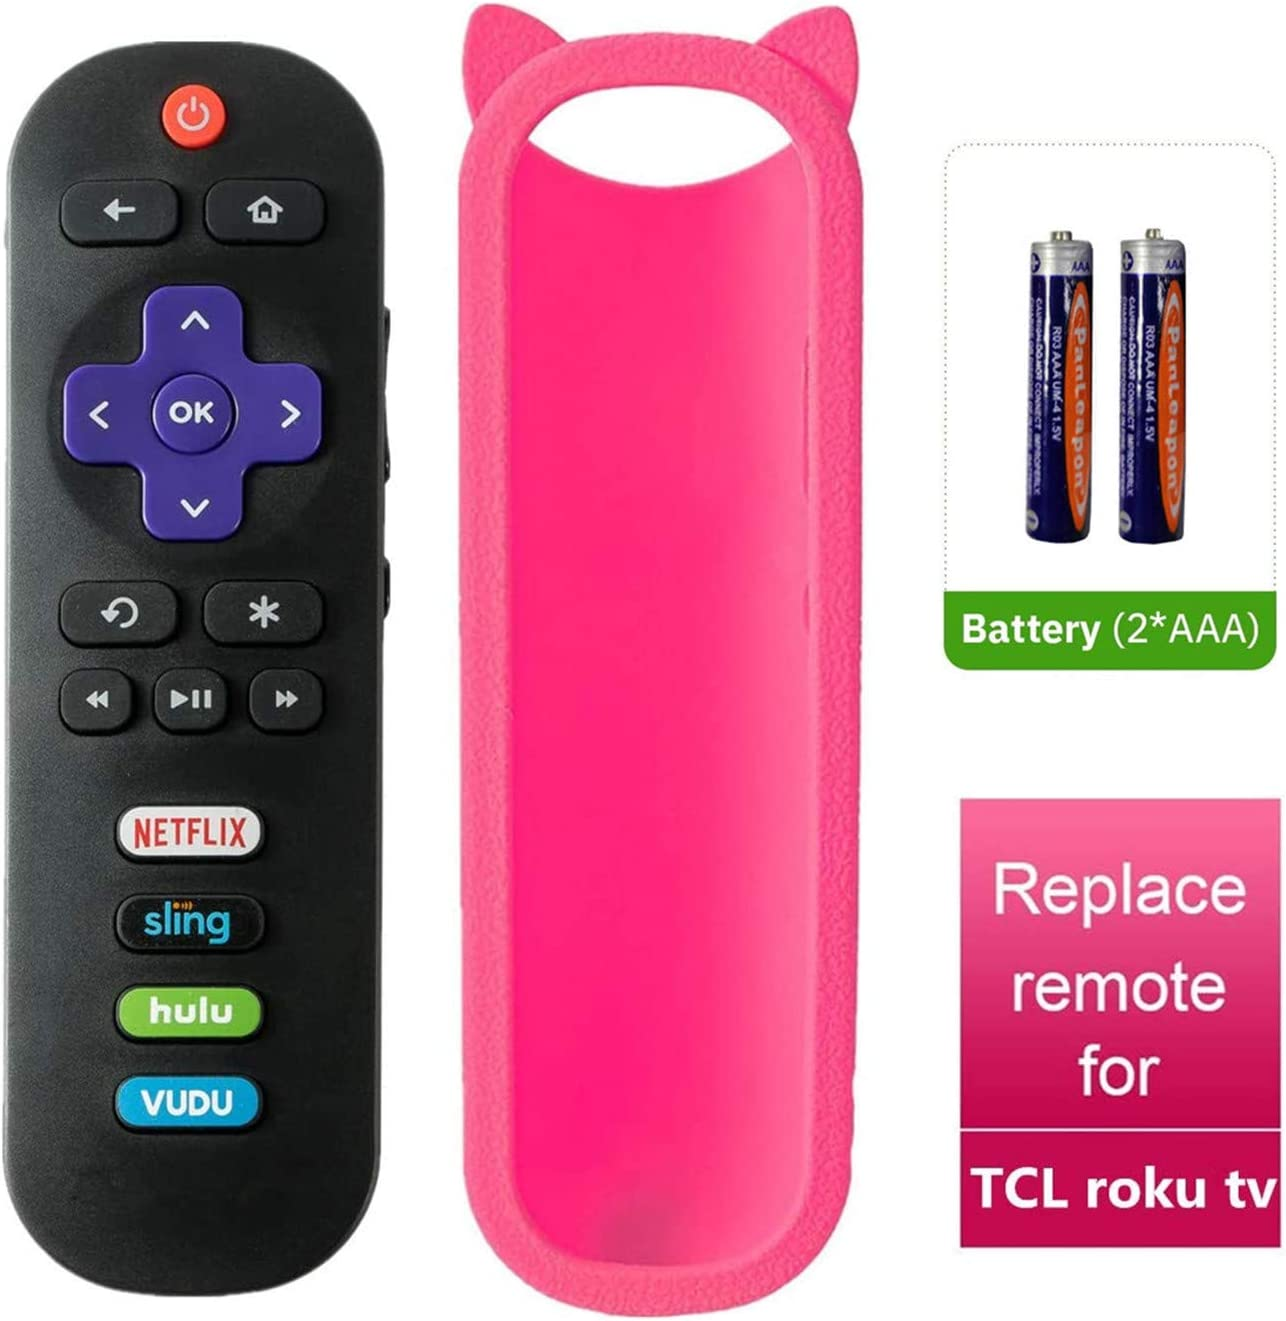 Bedycoon Remote Control and Pink Remote Cover Compatible with TCL Roku TV 55UP120 55us57 55S401 49S405 65S405 65s401 55s405 32S3850 32S3700 40FS3800 32S3800 2017 2018 TCL TV,and Batteries